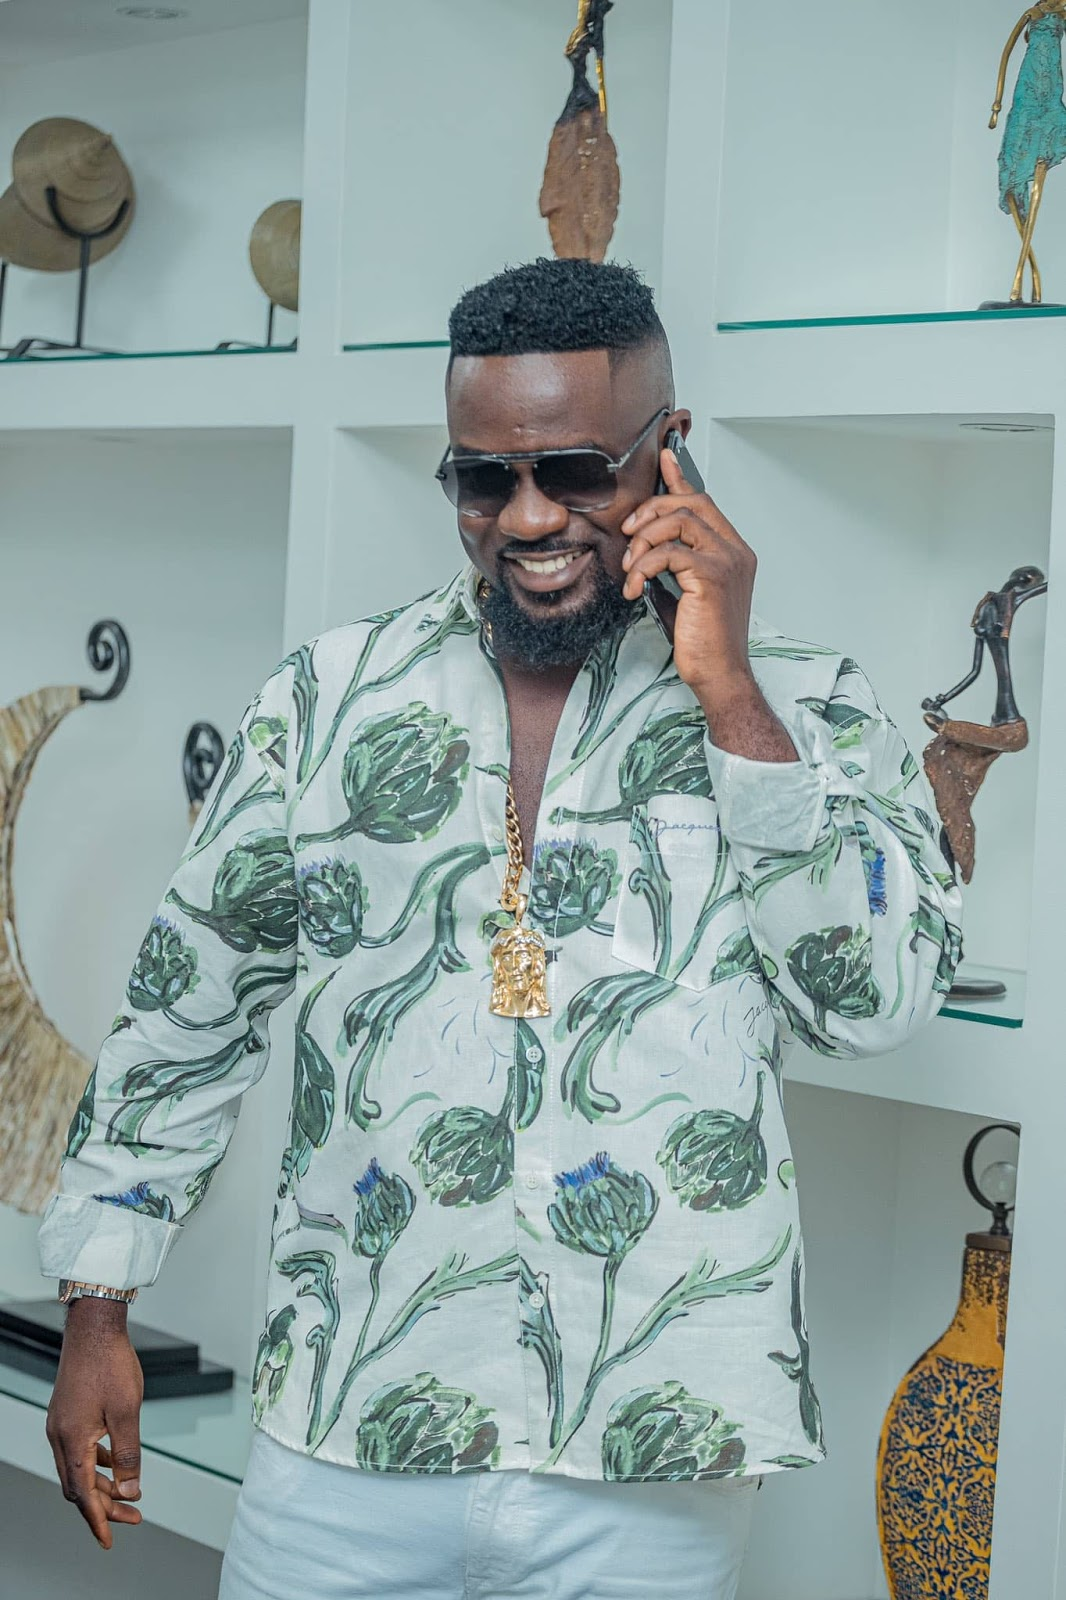 sarkodie,sarkodie happy day, happy day, sarkodie and kuami eugene, sarkodie and kwame eugene, kuami eugene happy day, sarkodie highest, sarkodie ft kuami eugene, ghana music, ghana news, entertainment news, entertainment, ghana entertainment, volumegh,